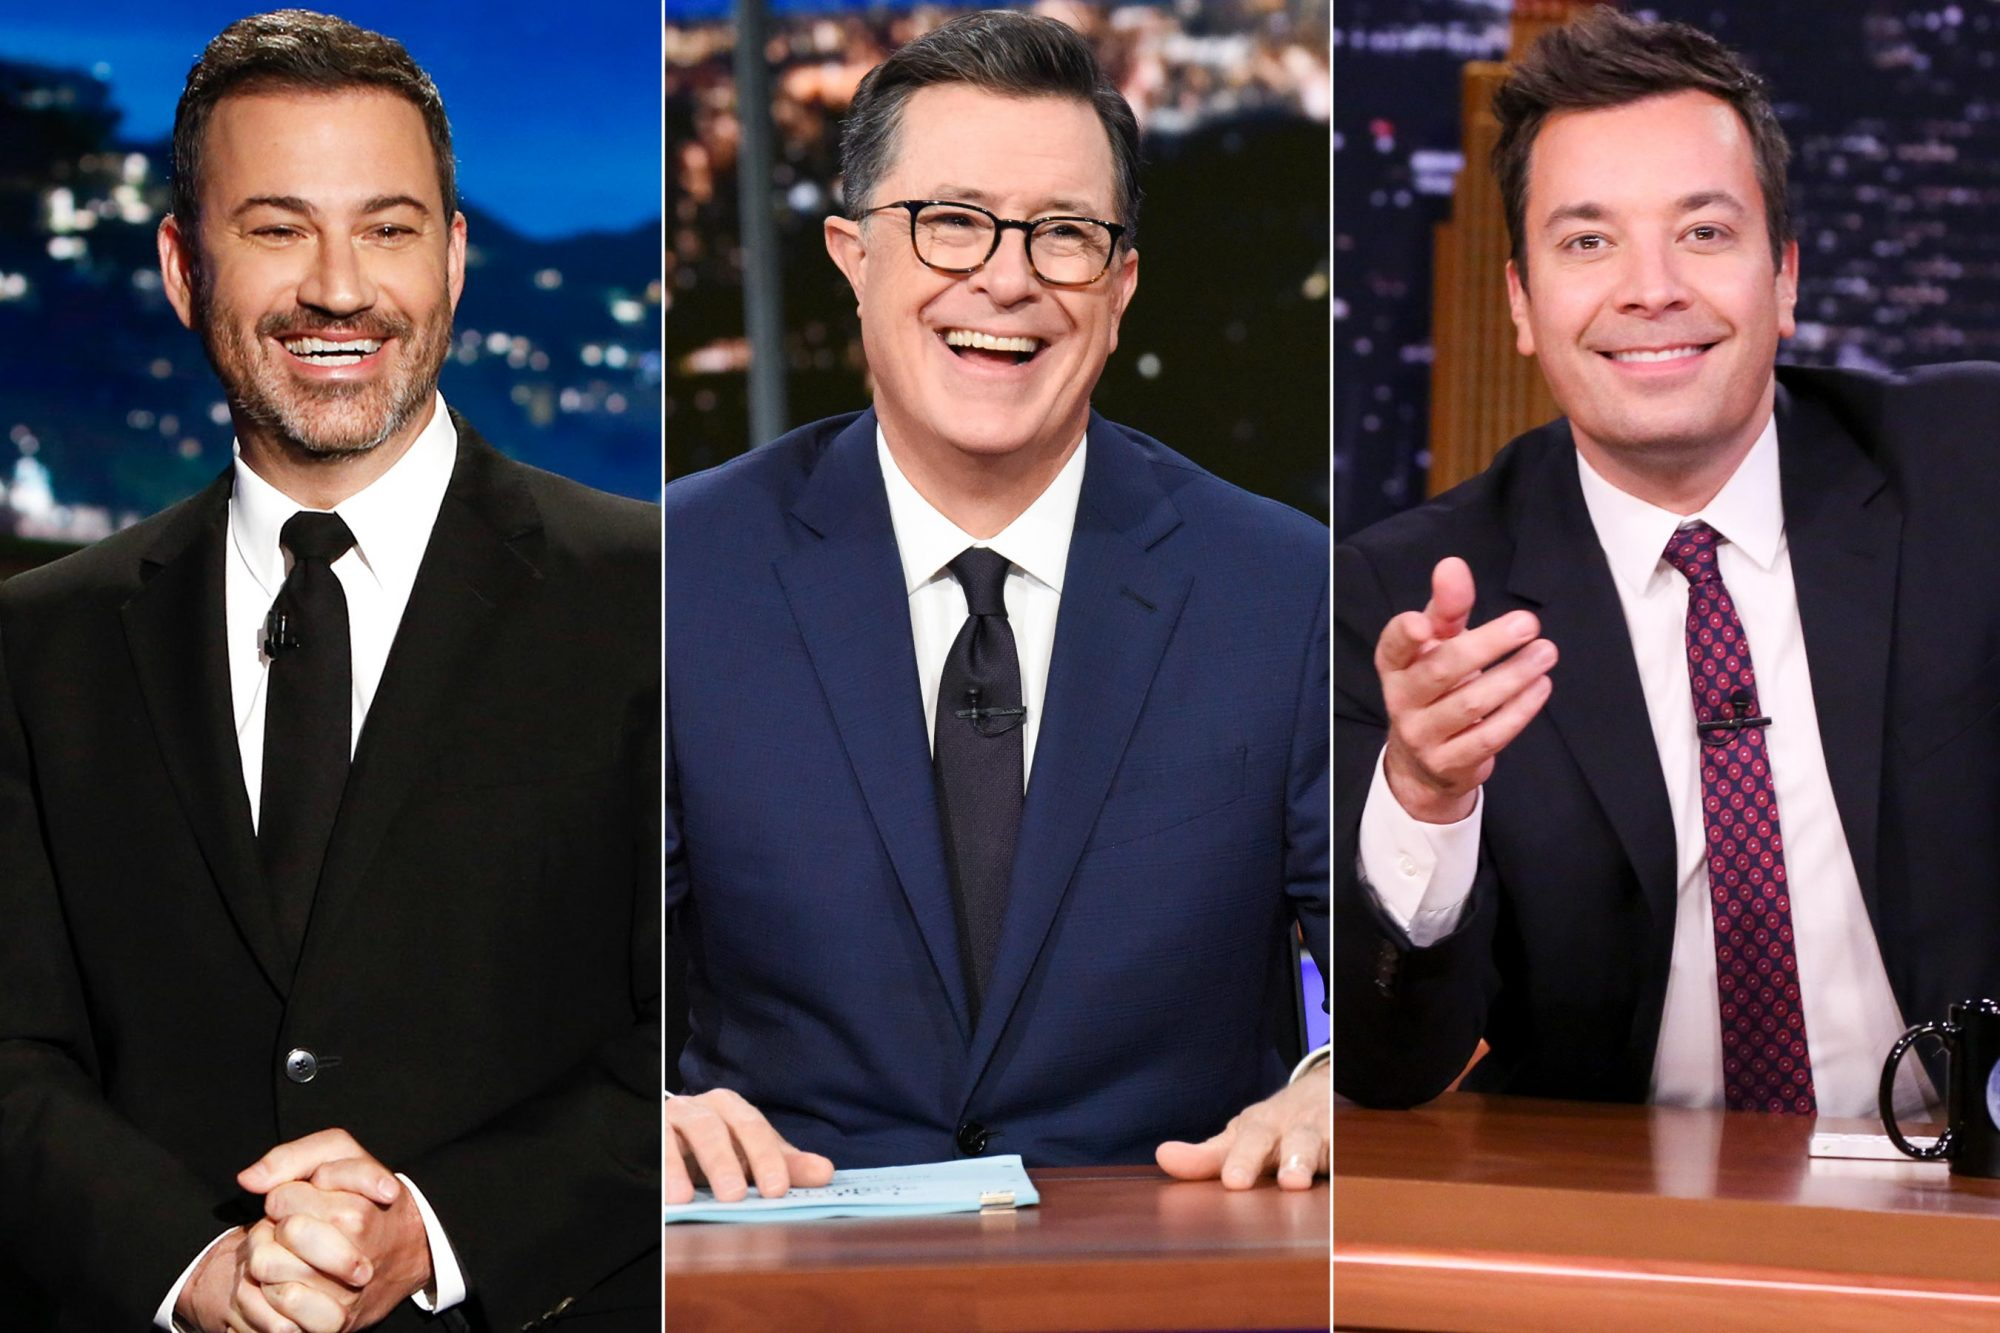 Jimmy Kimmel / Stephen Colbert / Jimmy Fallon